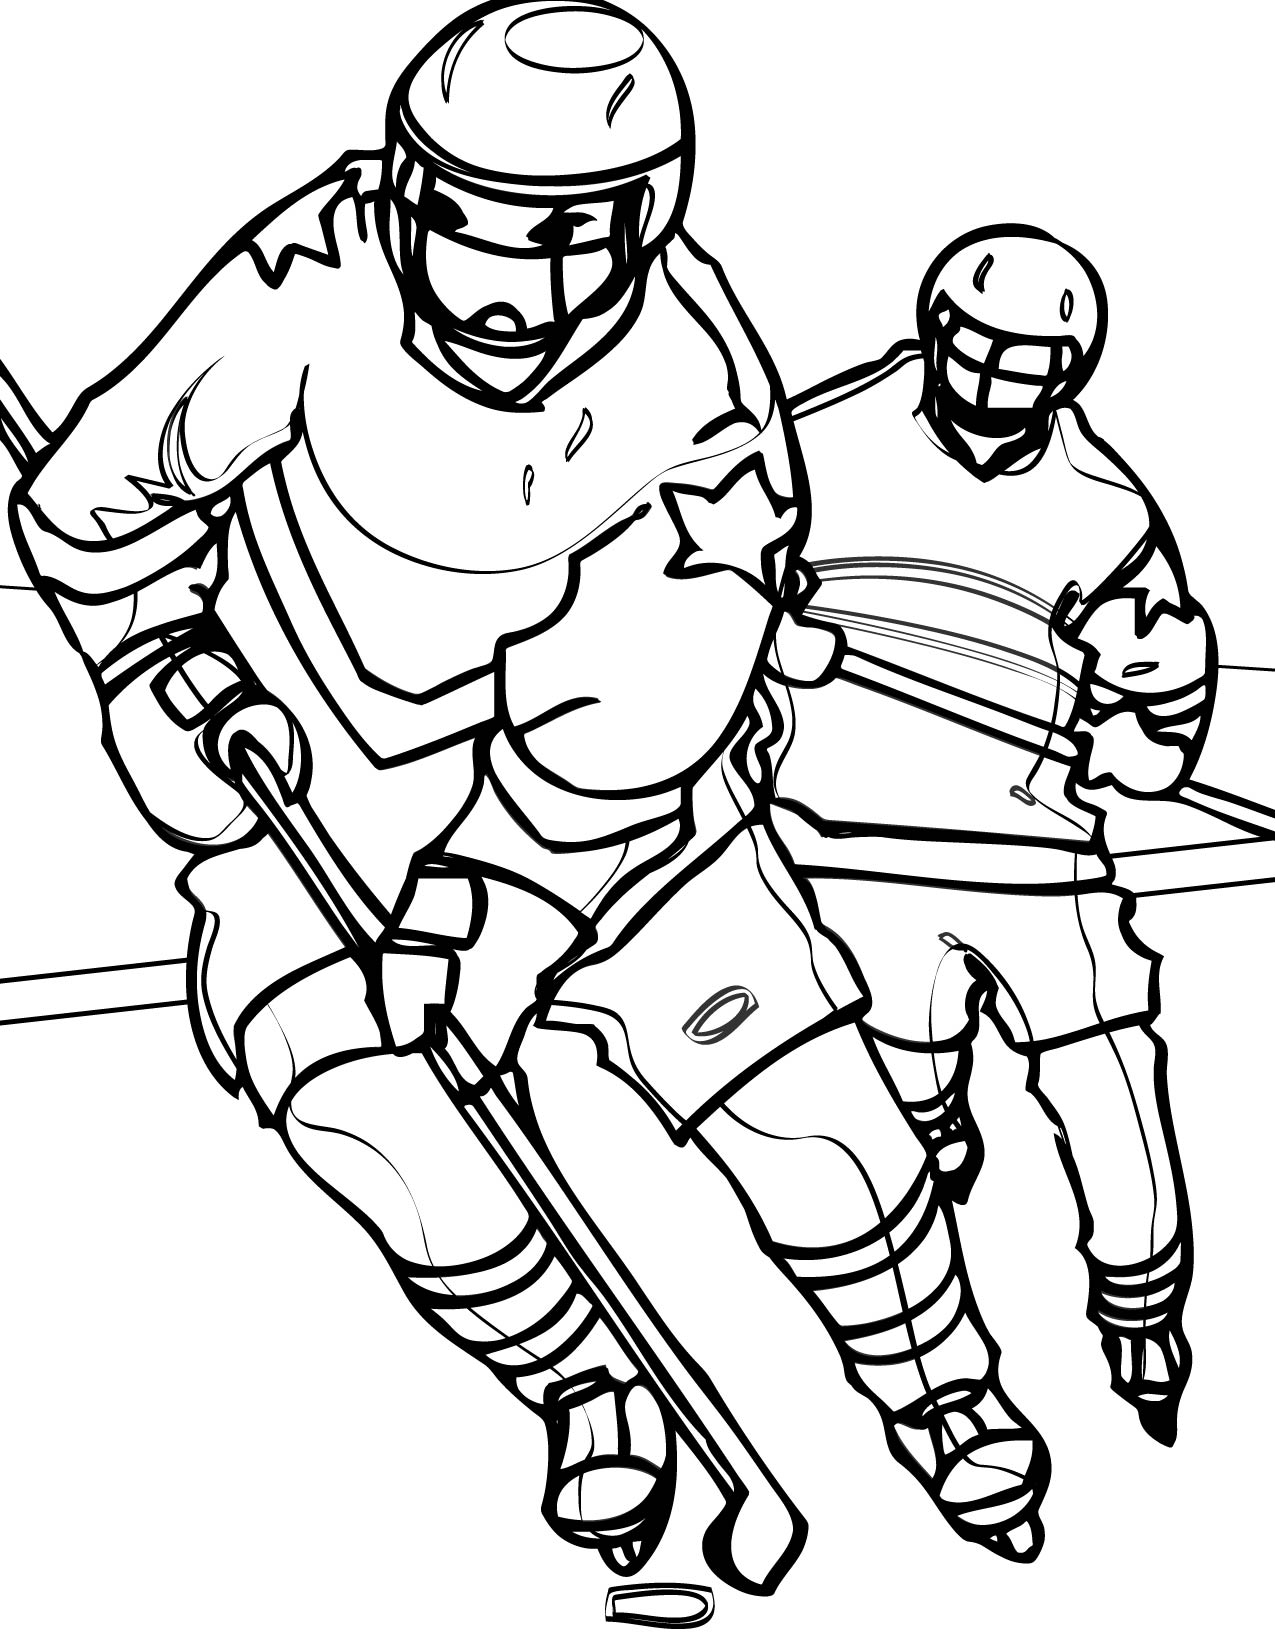 Image #17264 - Coloriage hockey gratuit